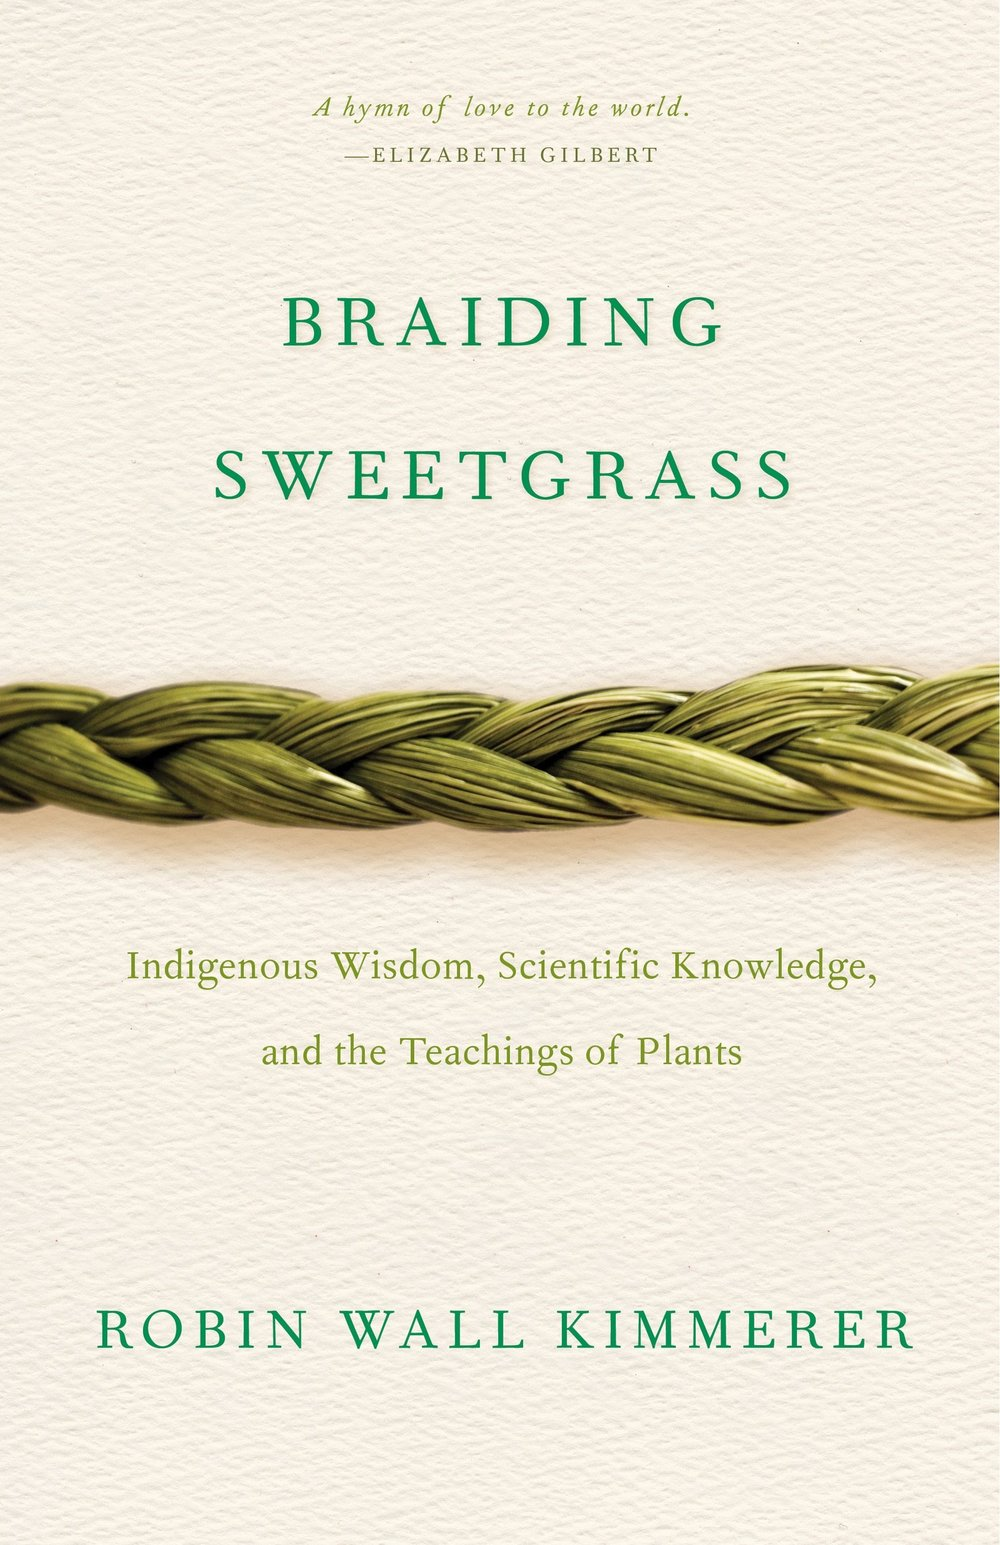 """Braiding Sweetgrass - by Robin Wall Kimmerer""""This book was recommended to me by a fellow GreenWorker and, even though I've just started it, I'm captivated. Kimmerer's prose weaves together her botanist background, Potawatomi Nation culture, and her experience as a mother, creating a powerful book that challenges us to look at plants, culture and ourselves through a new lens.""""- Kelly Stoecklein, Landscape Designer"""